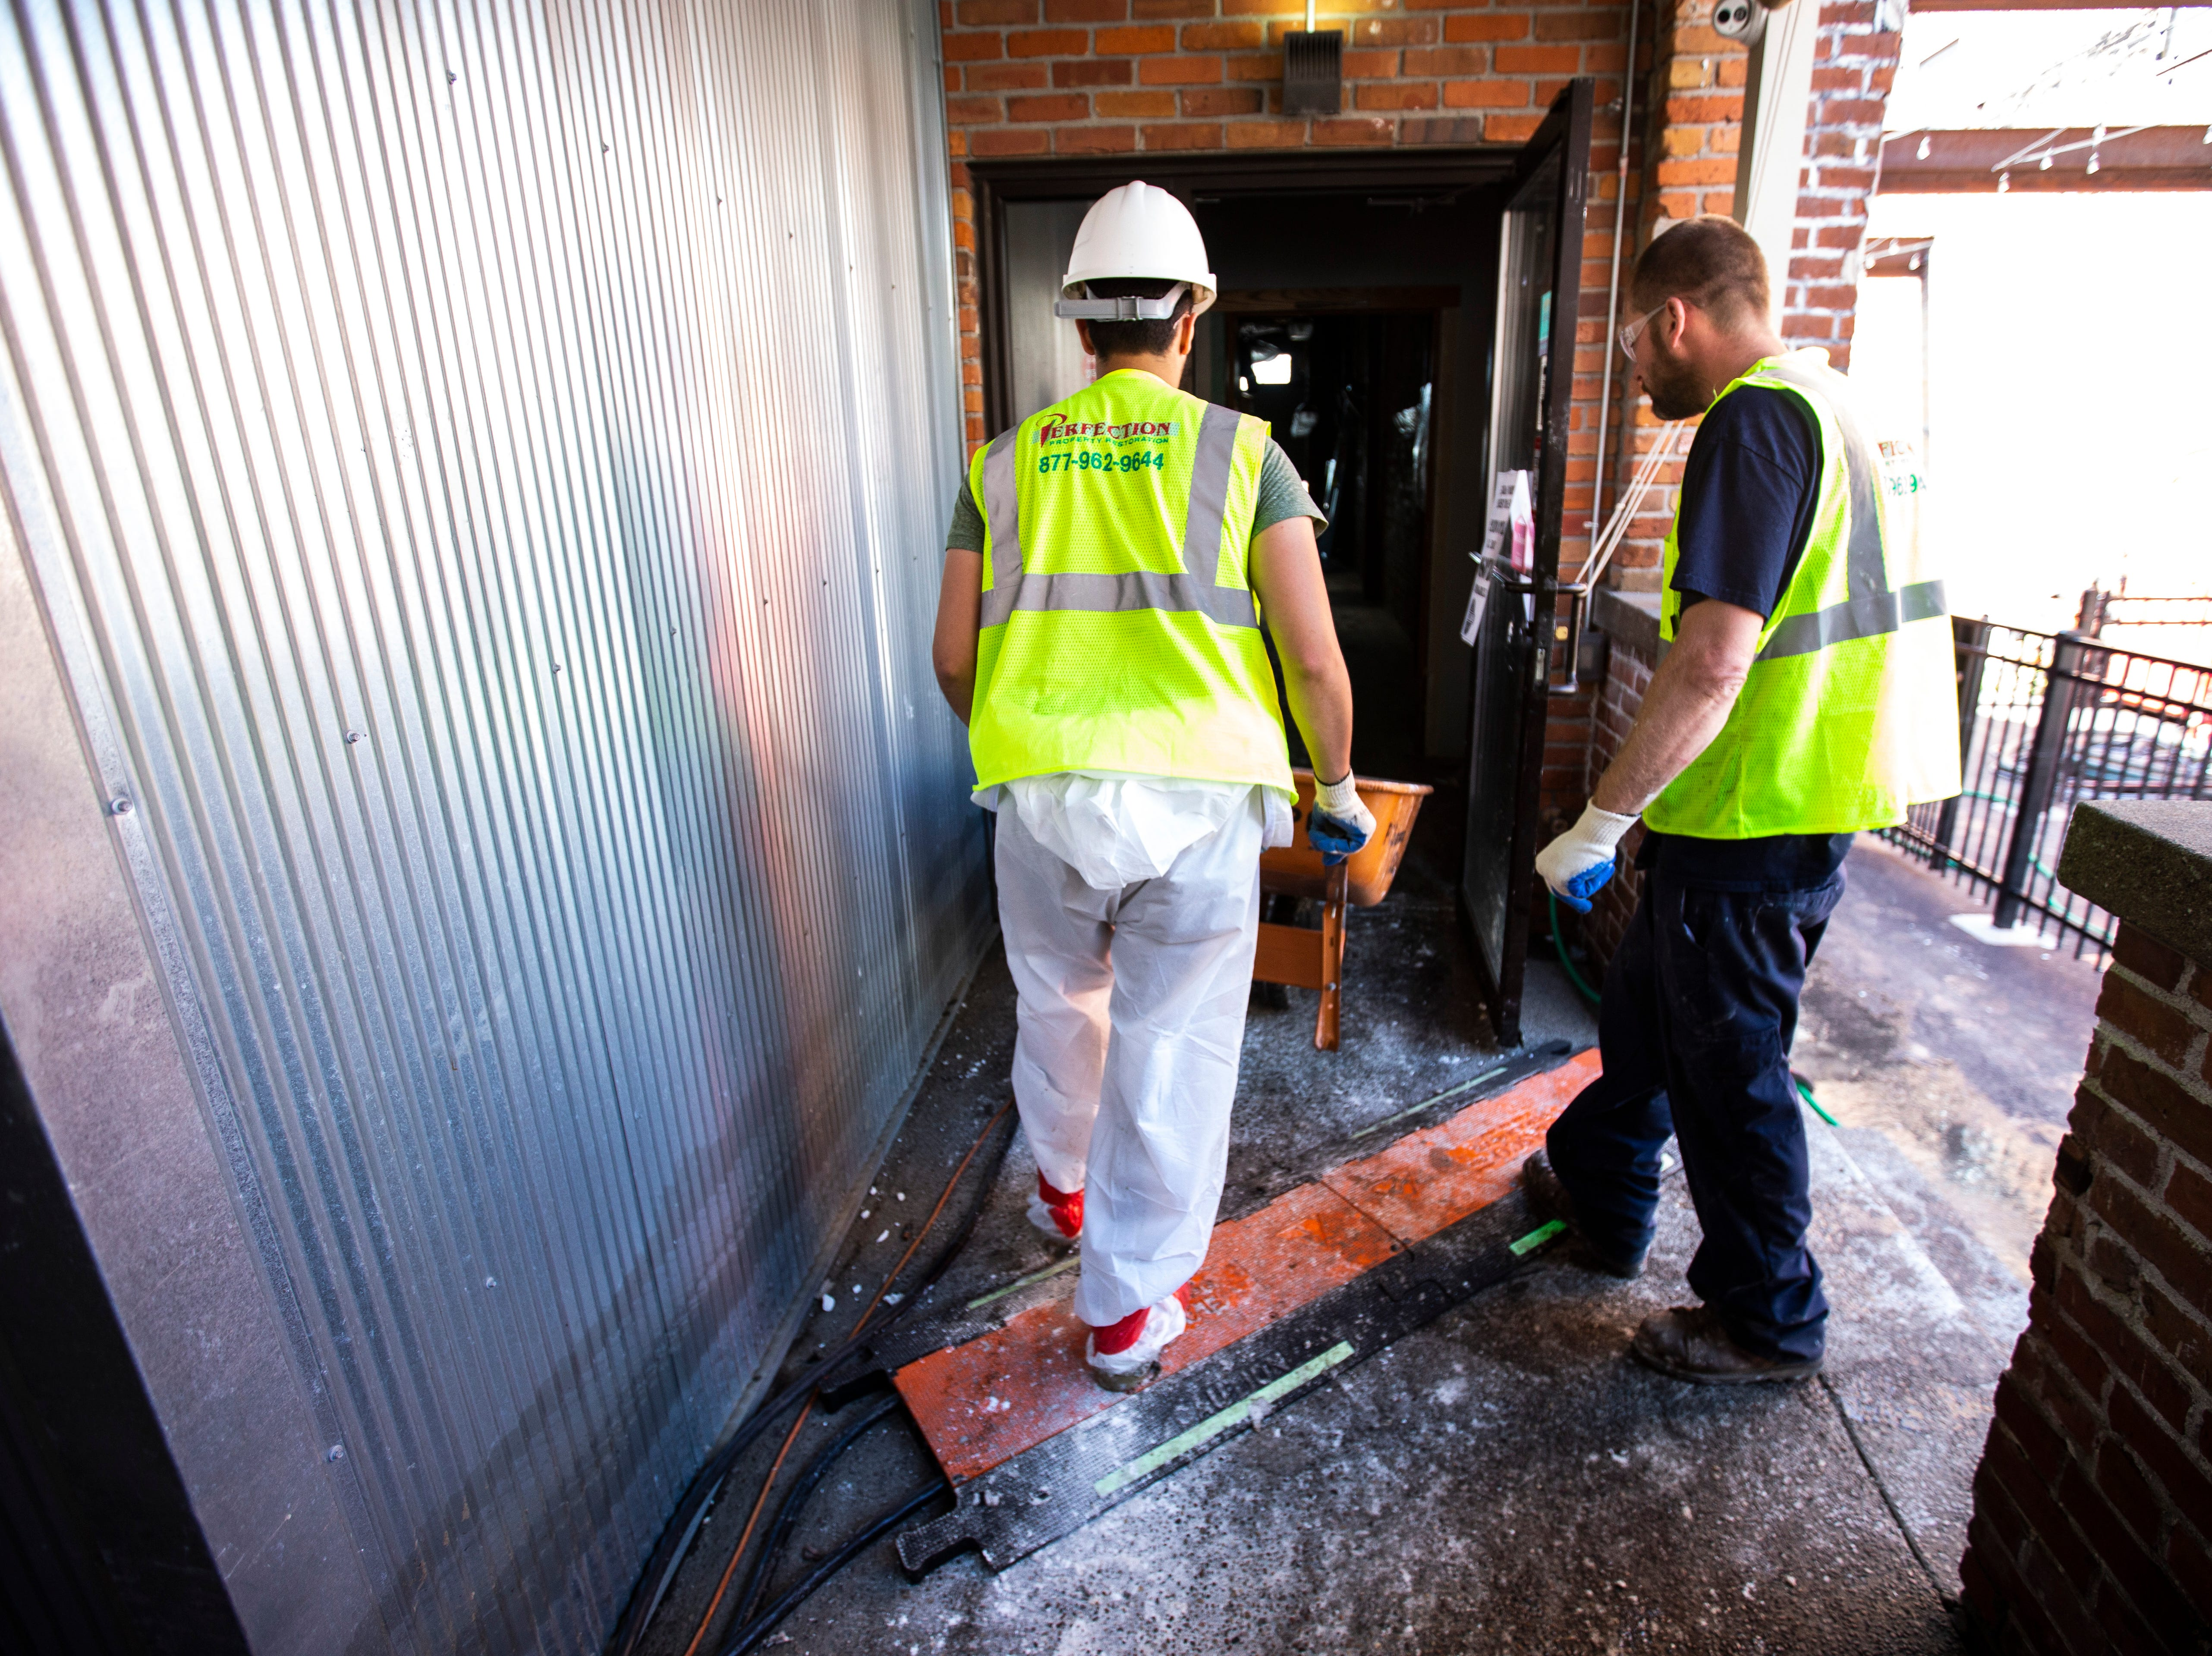 Workers clear out debris the remained after floodwater receded, Wednesday, May 15, 2019, at Front Street Brewery in downtown Davenport, Iowa.